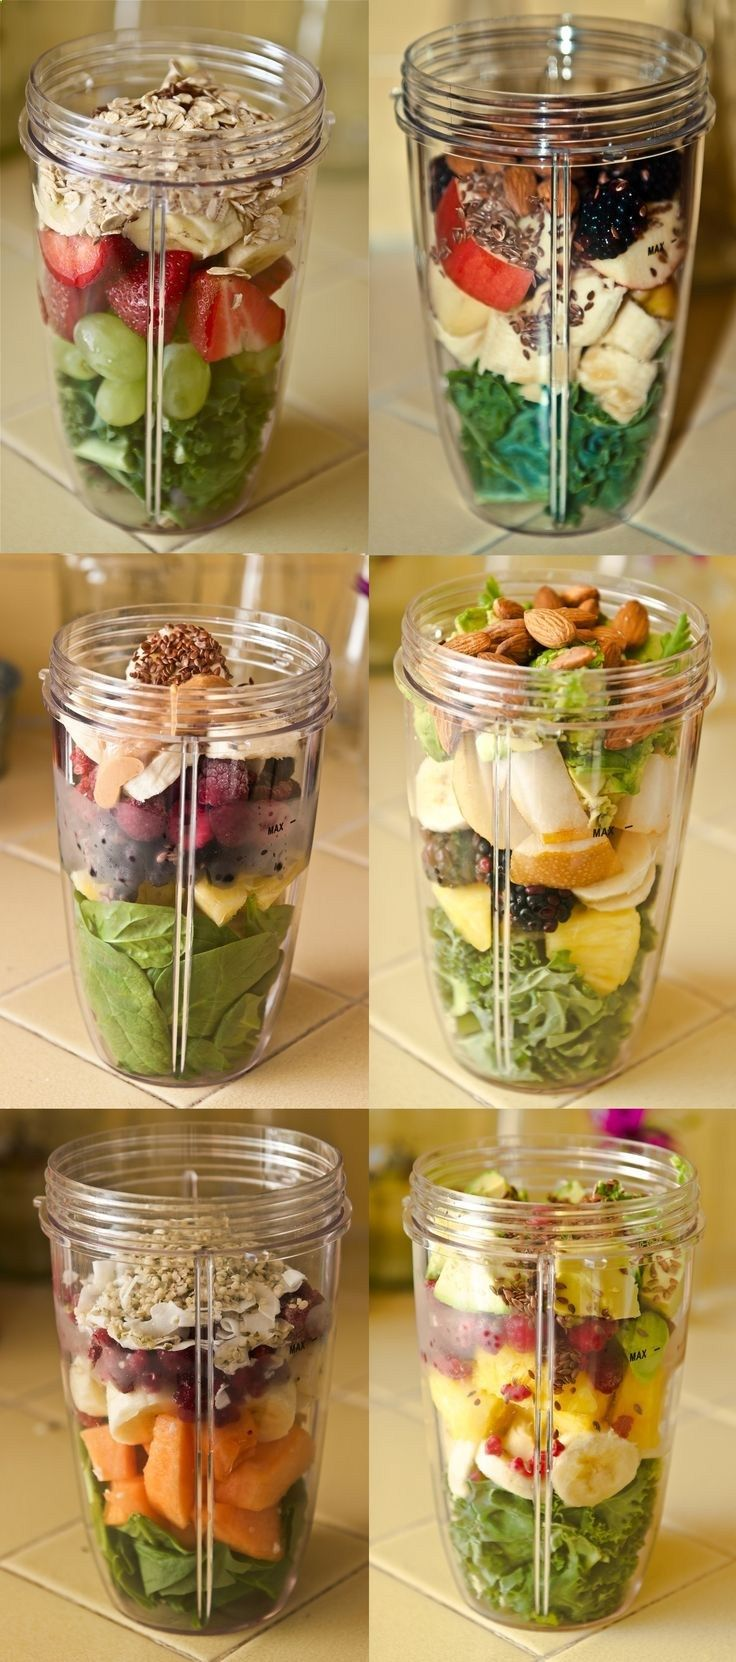 Great recipes for Nutribullet